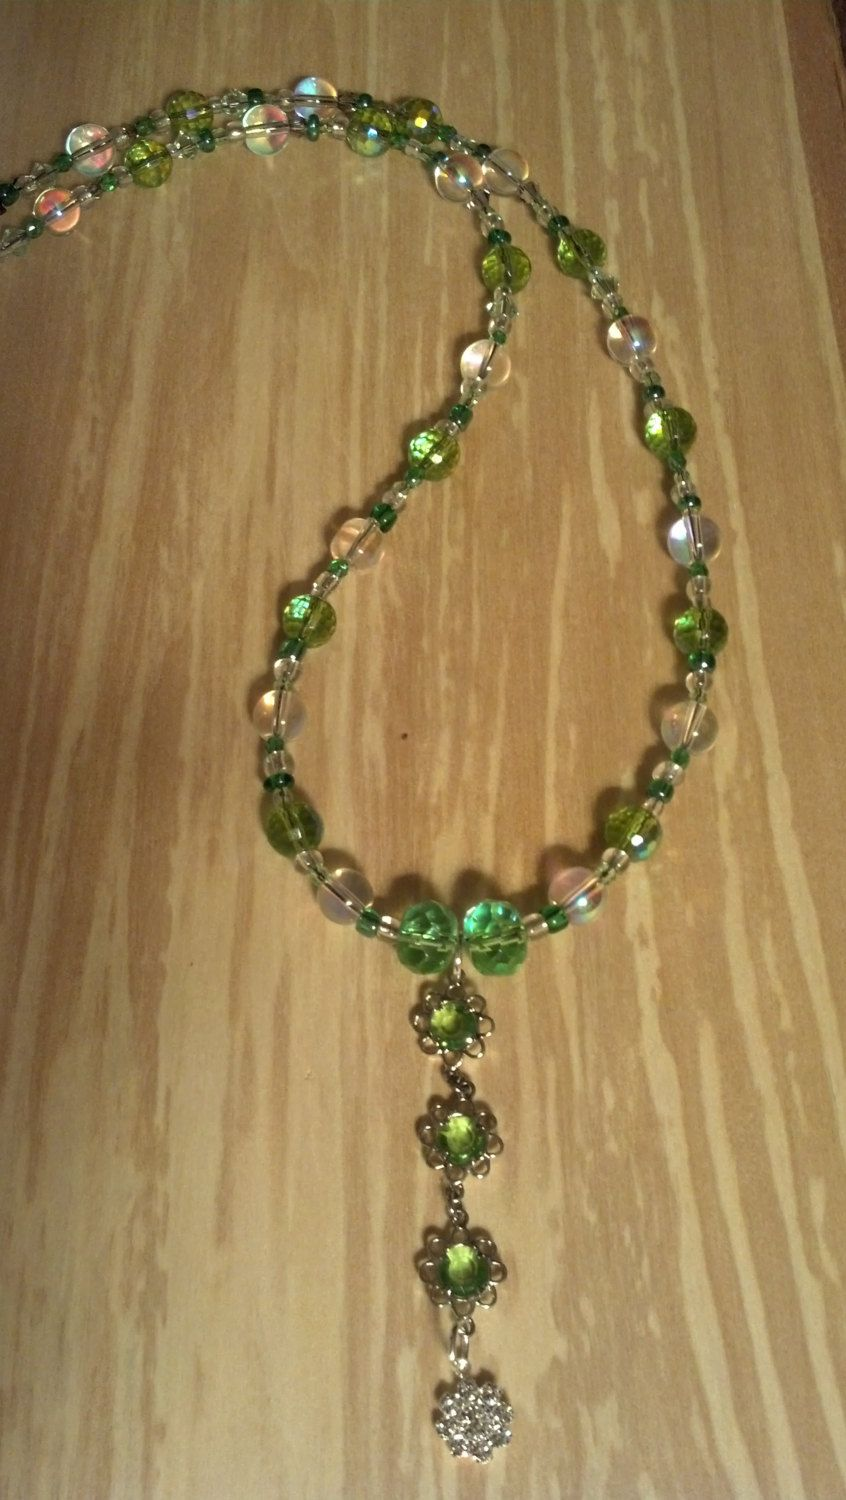 Spring+Green+and+Iridescent+Glass+Beads+21+Inch+by+FlowerFelicity,+$18.00